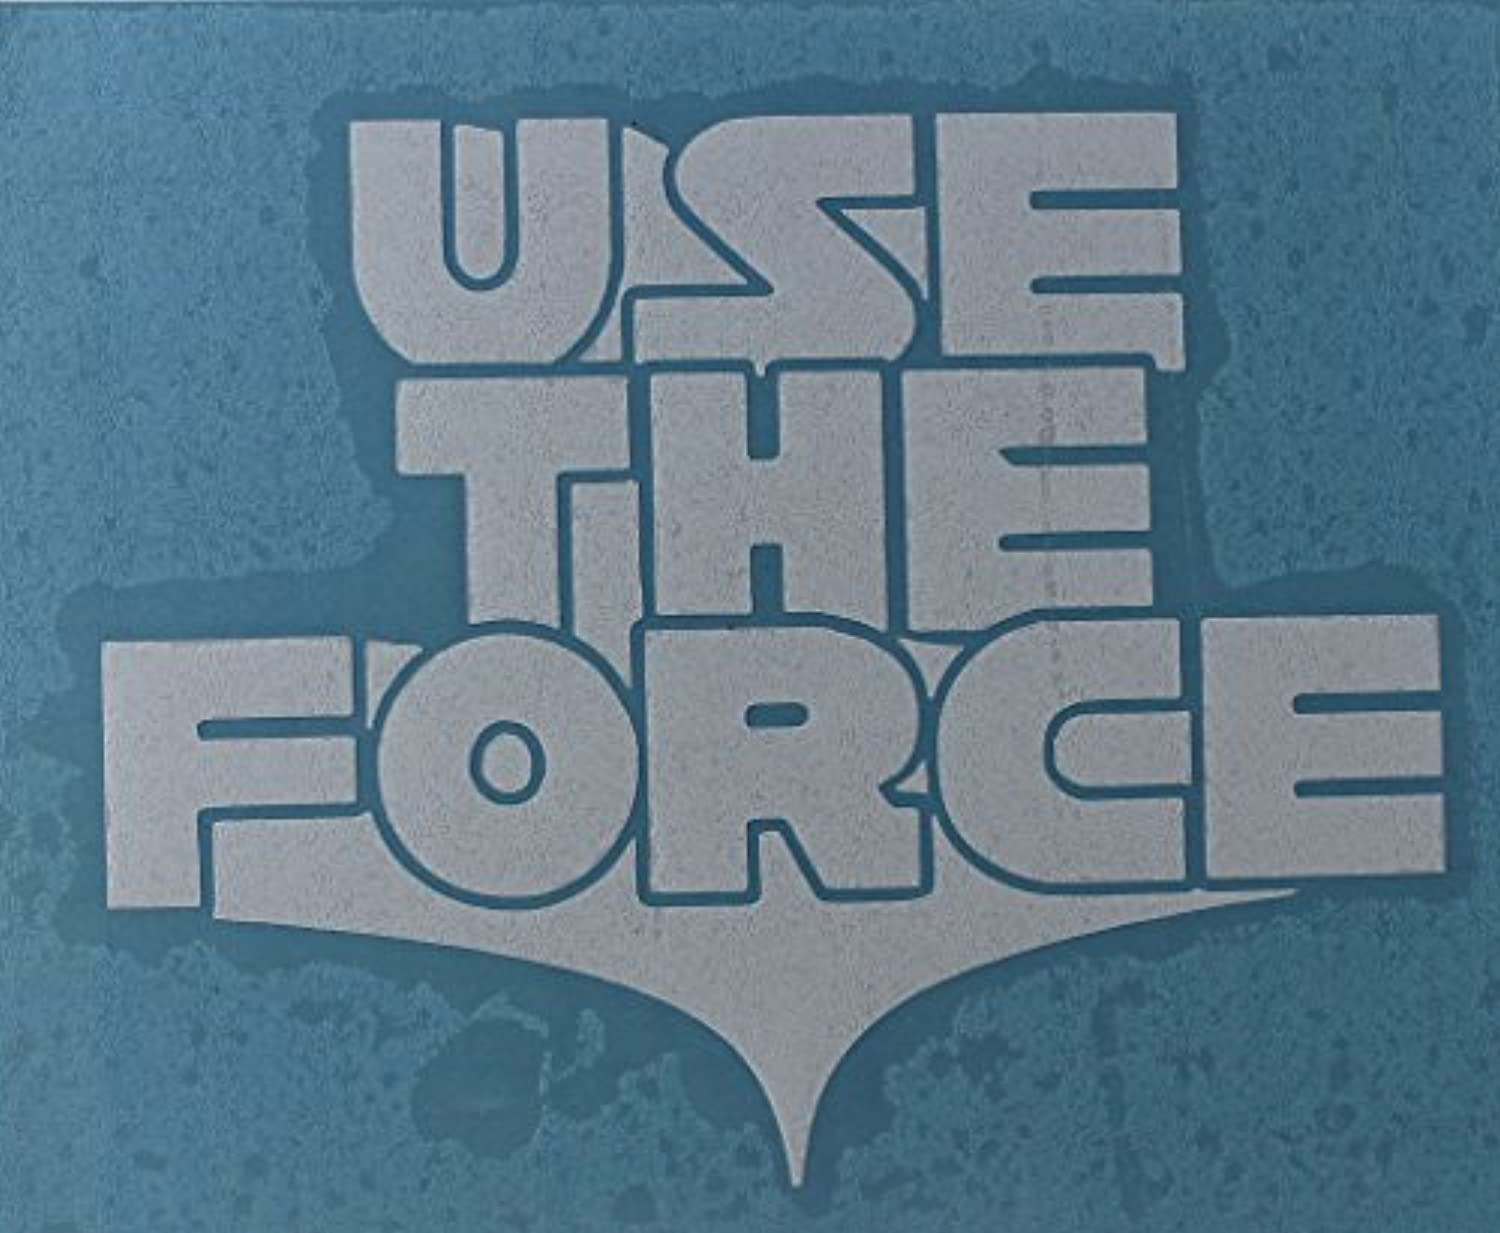 Licenses Products Star Wars Use the Force rub-onステッカー、ホワイト